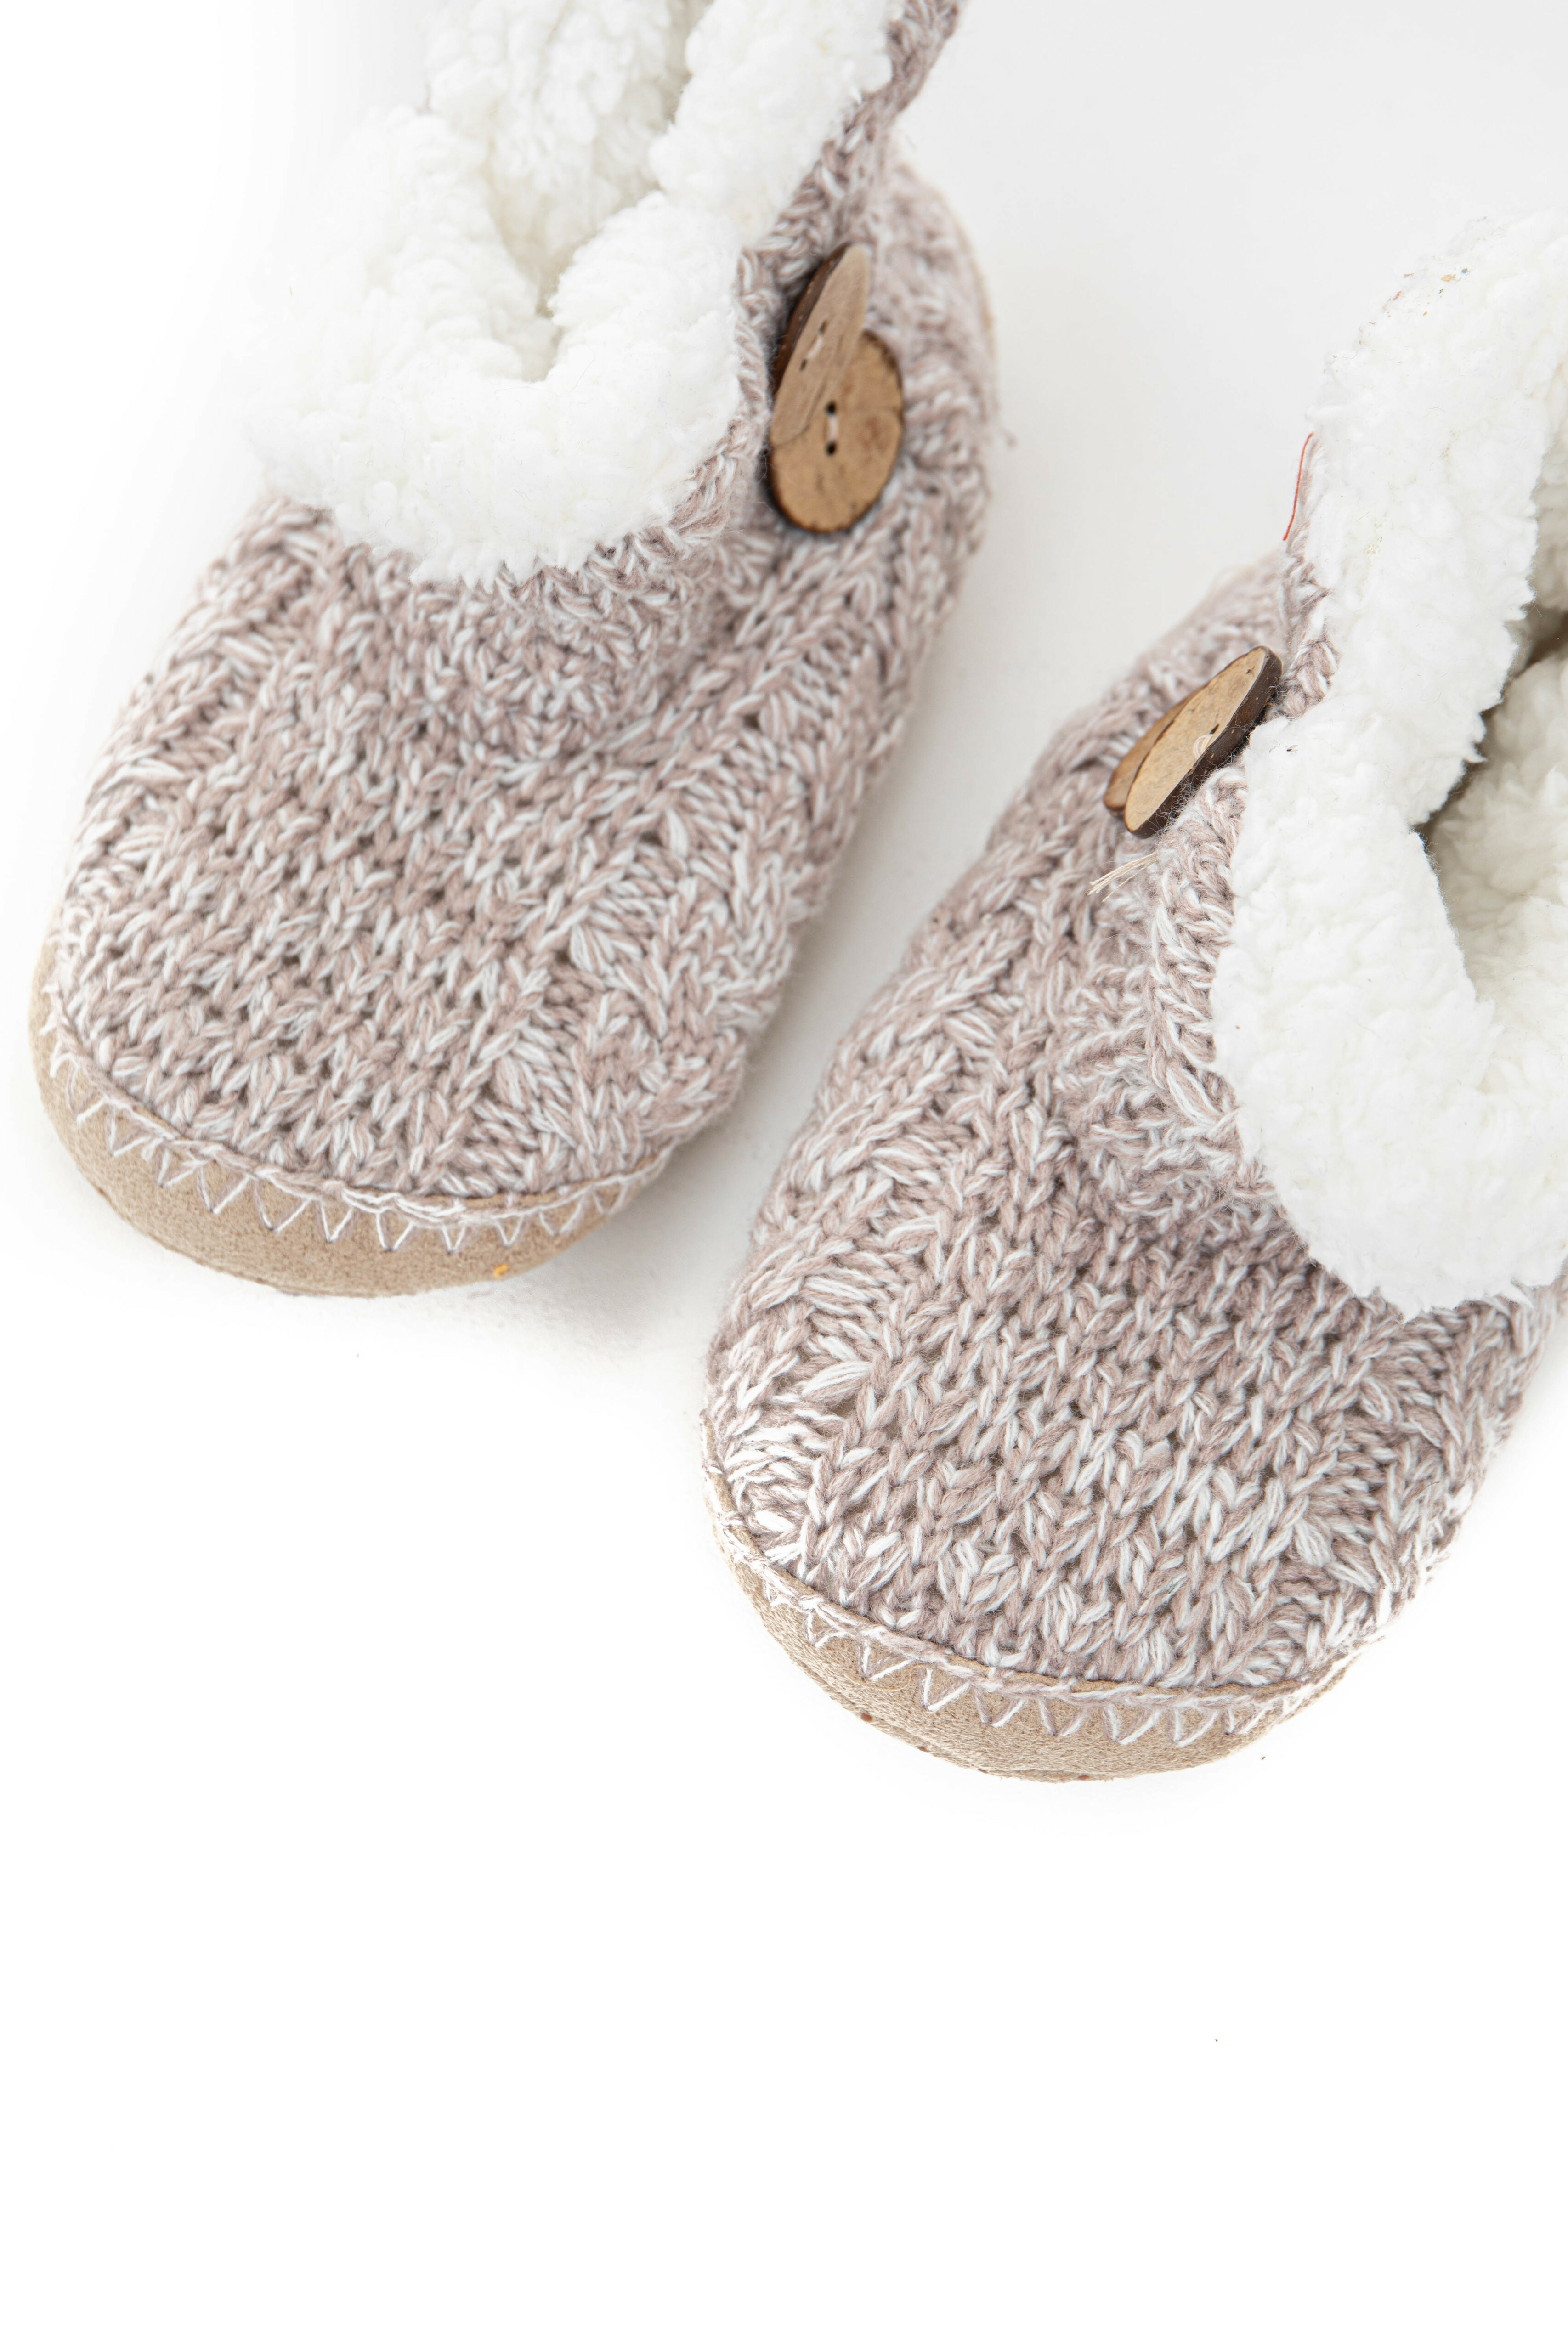 Latte and Ivory Knit Bootie Slippers with Button Details